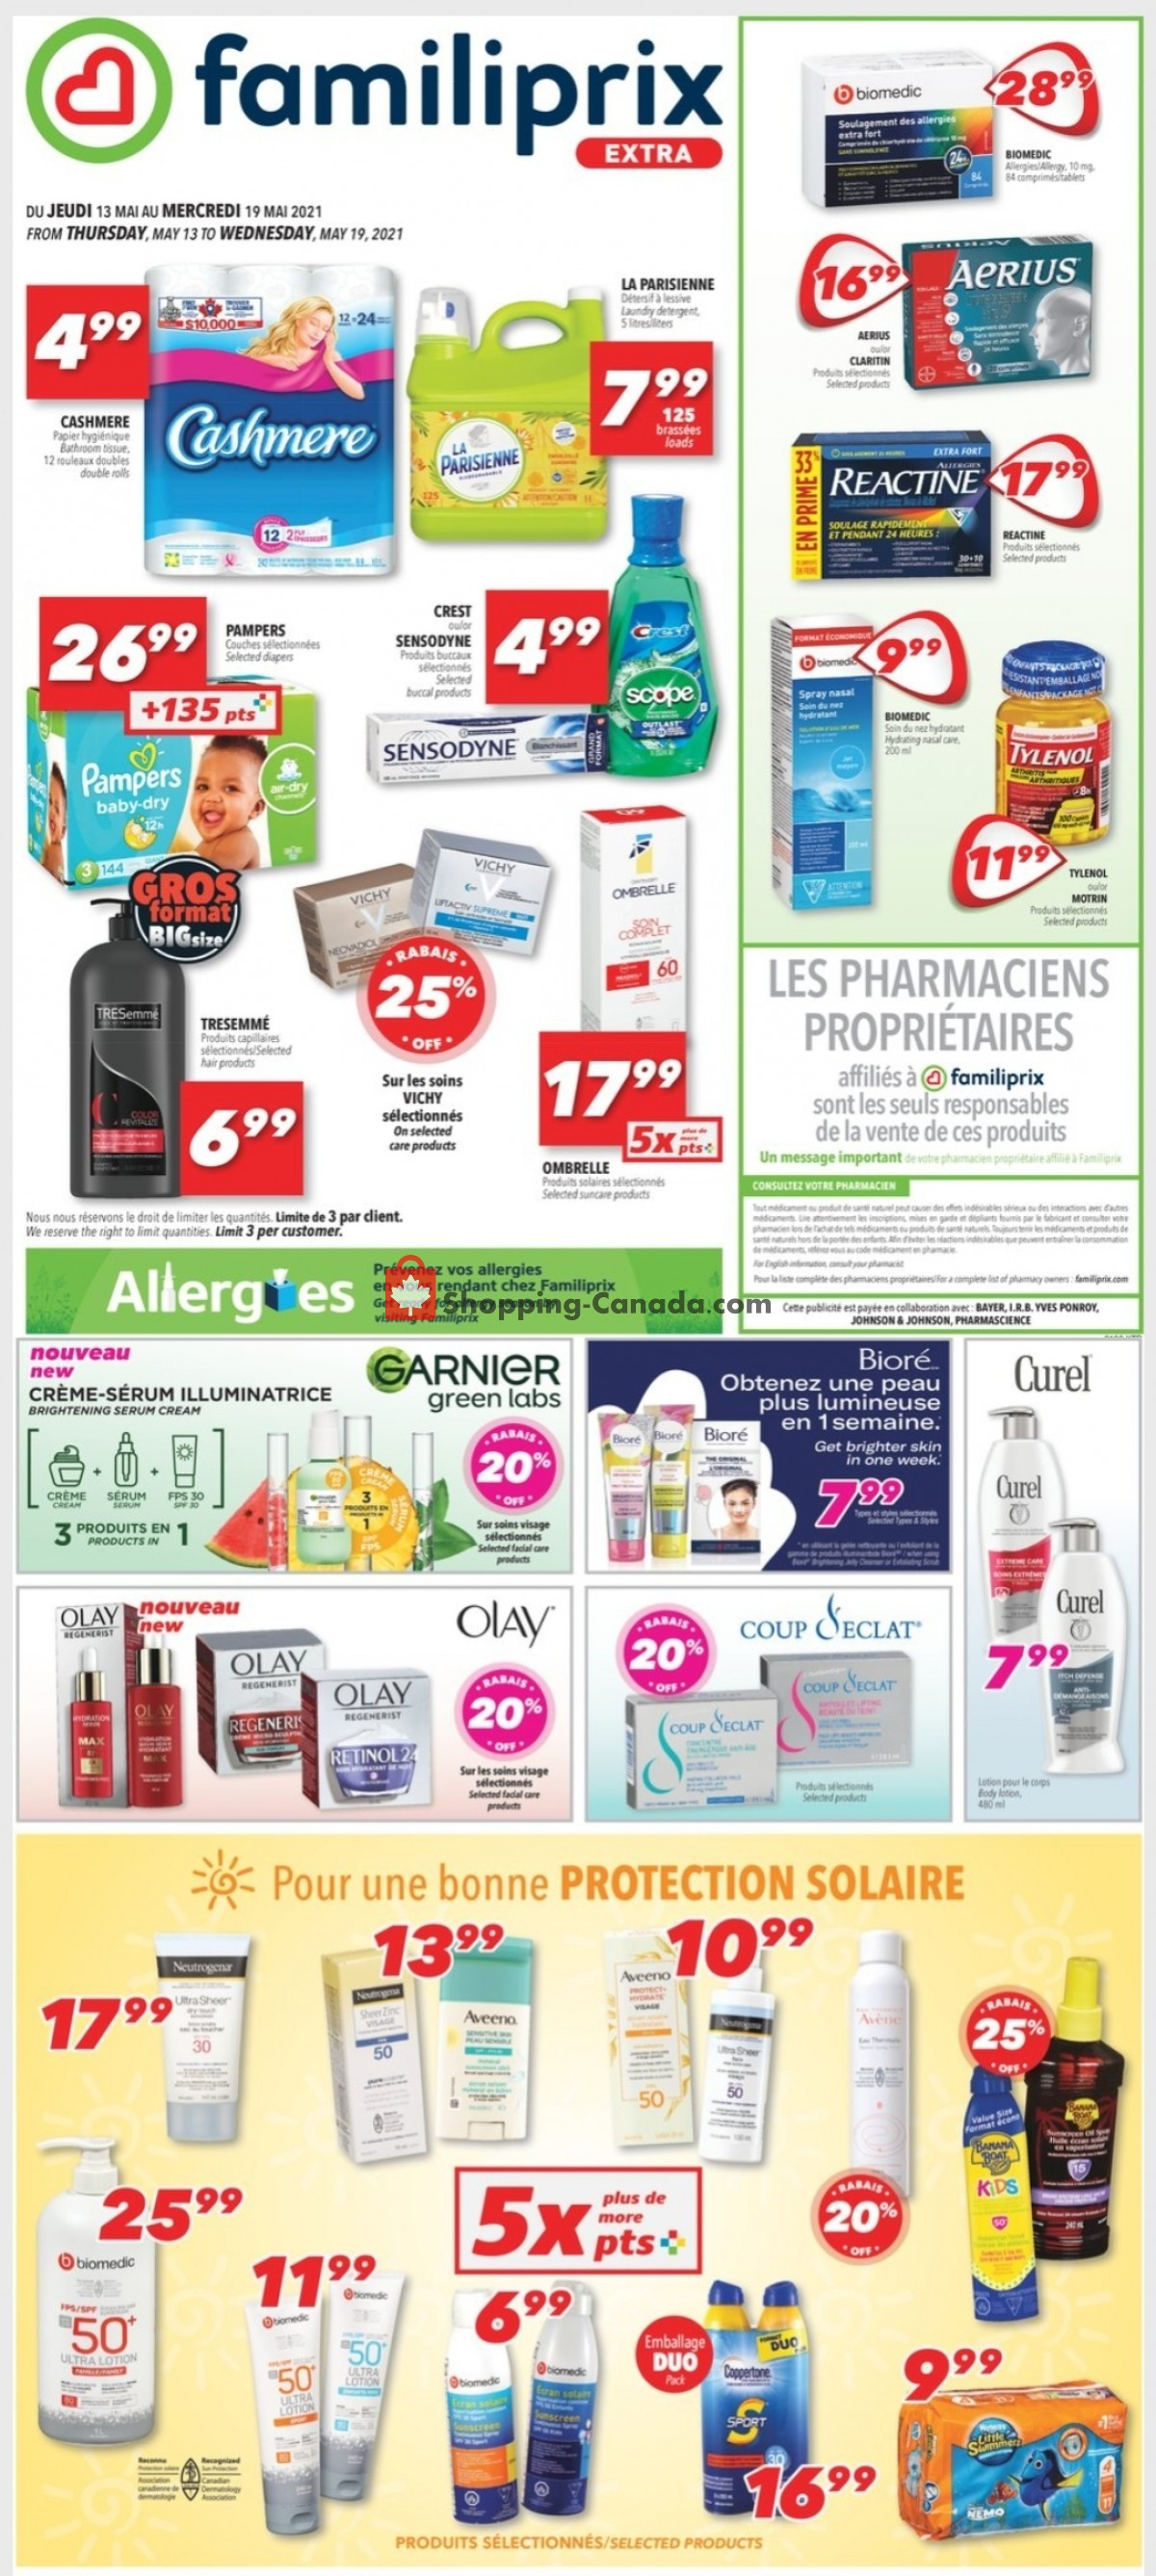 Flyer Familiprix Canada - from Thursday May 13, 2021 to Wednesday May 19, 2021